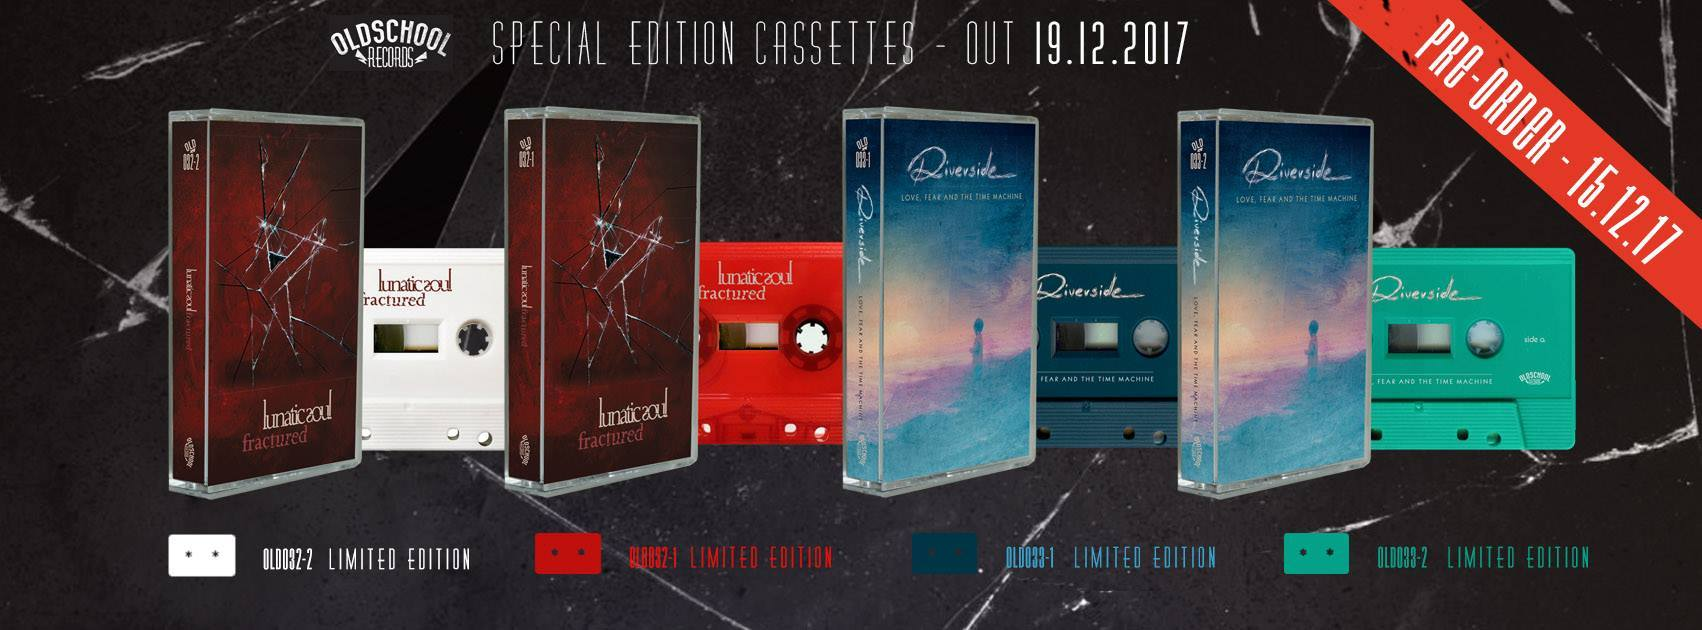 cassette tapes release of Love, Fear and the Time Machine and Fractured